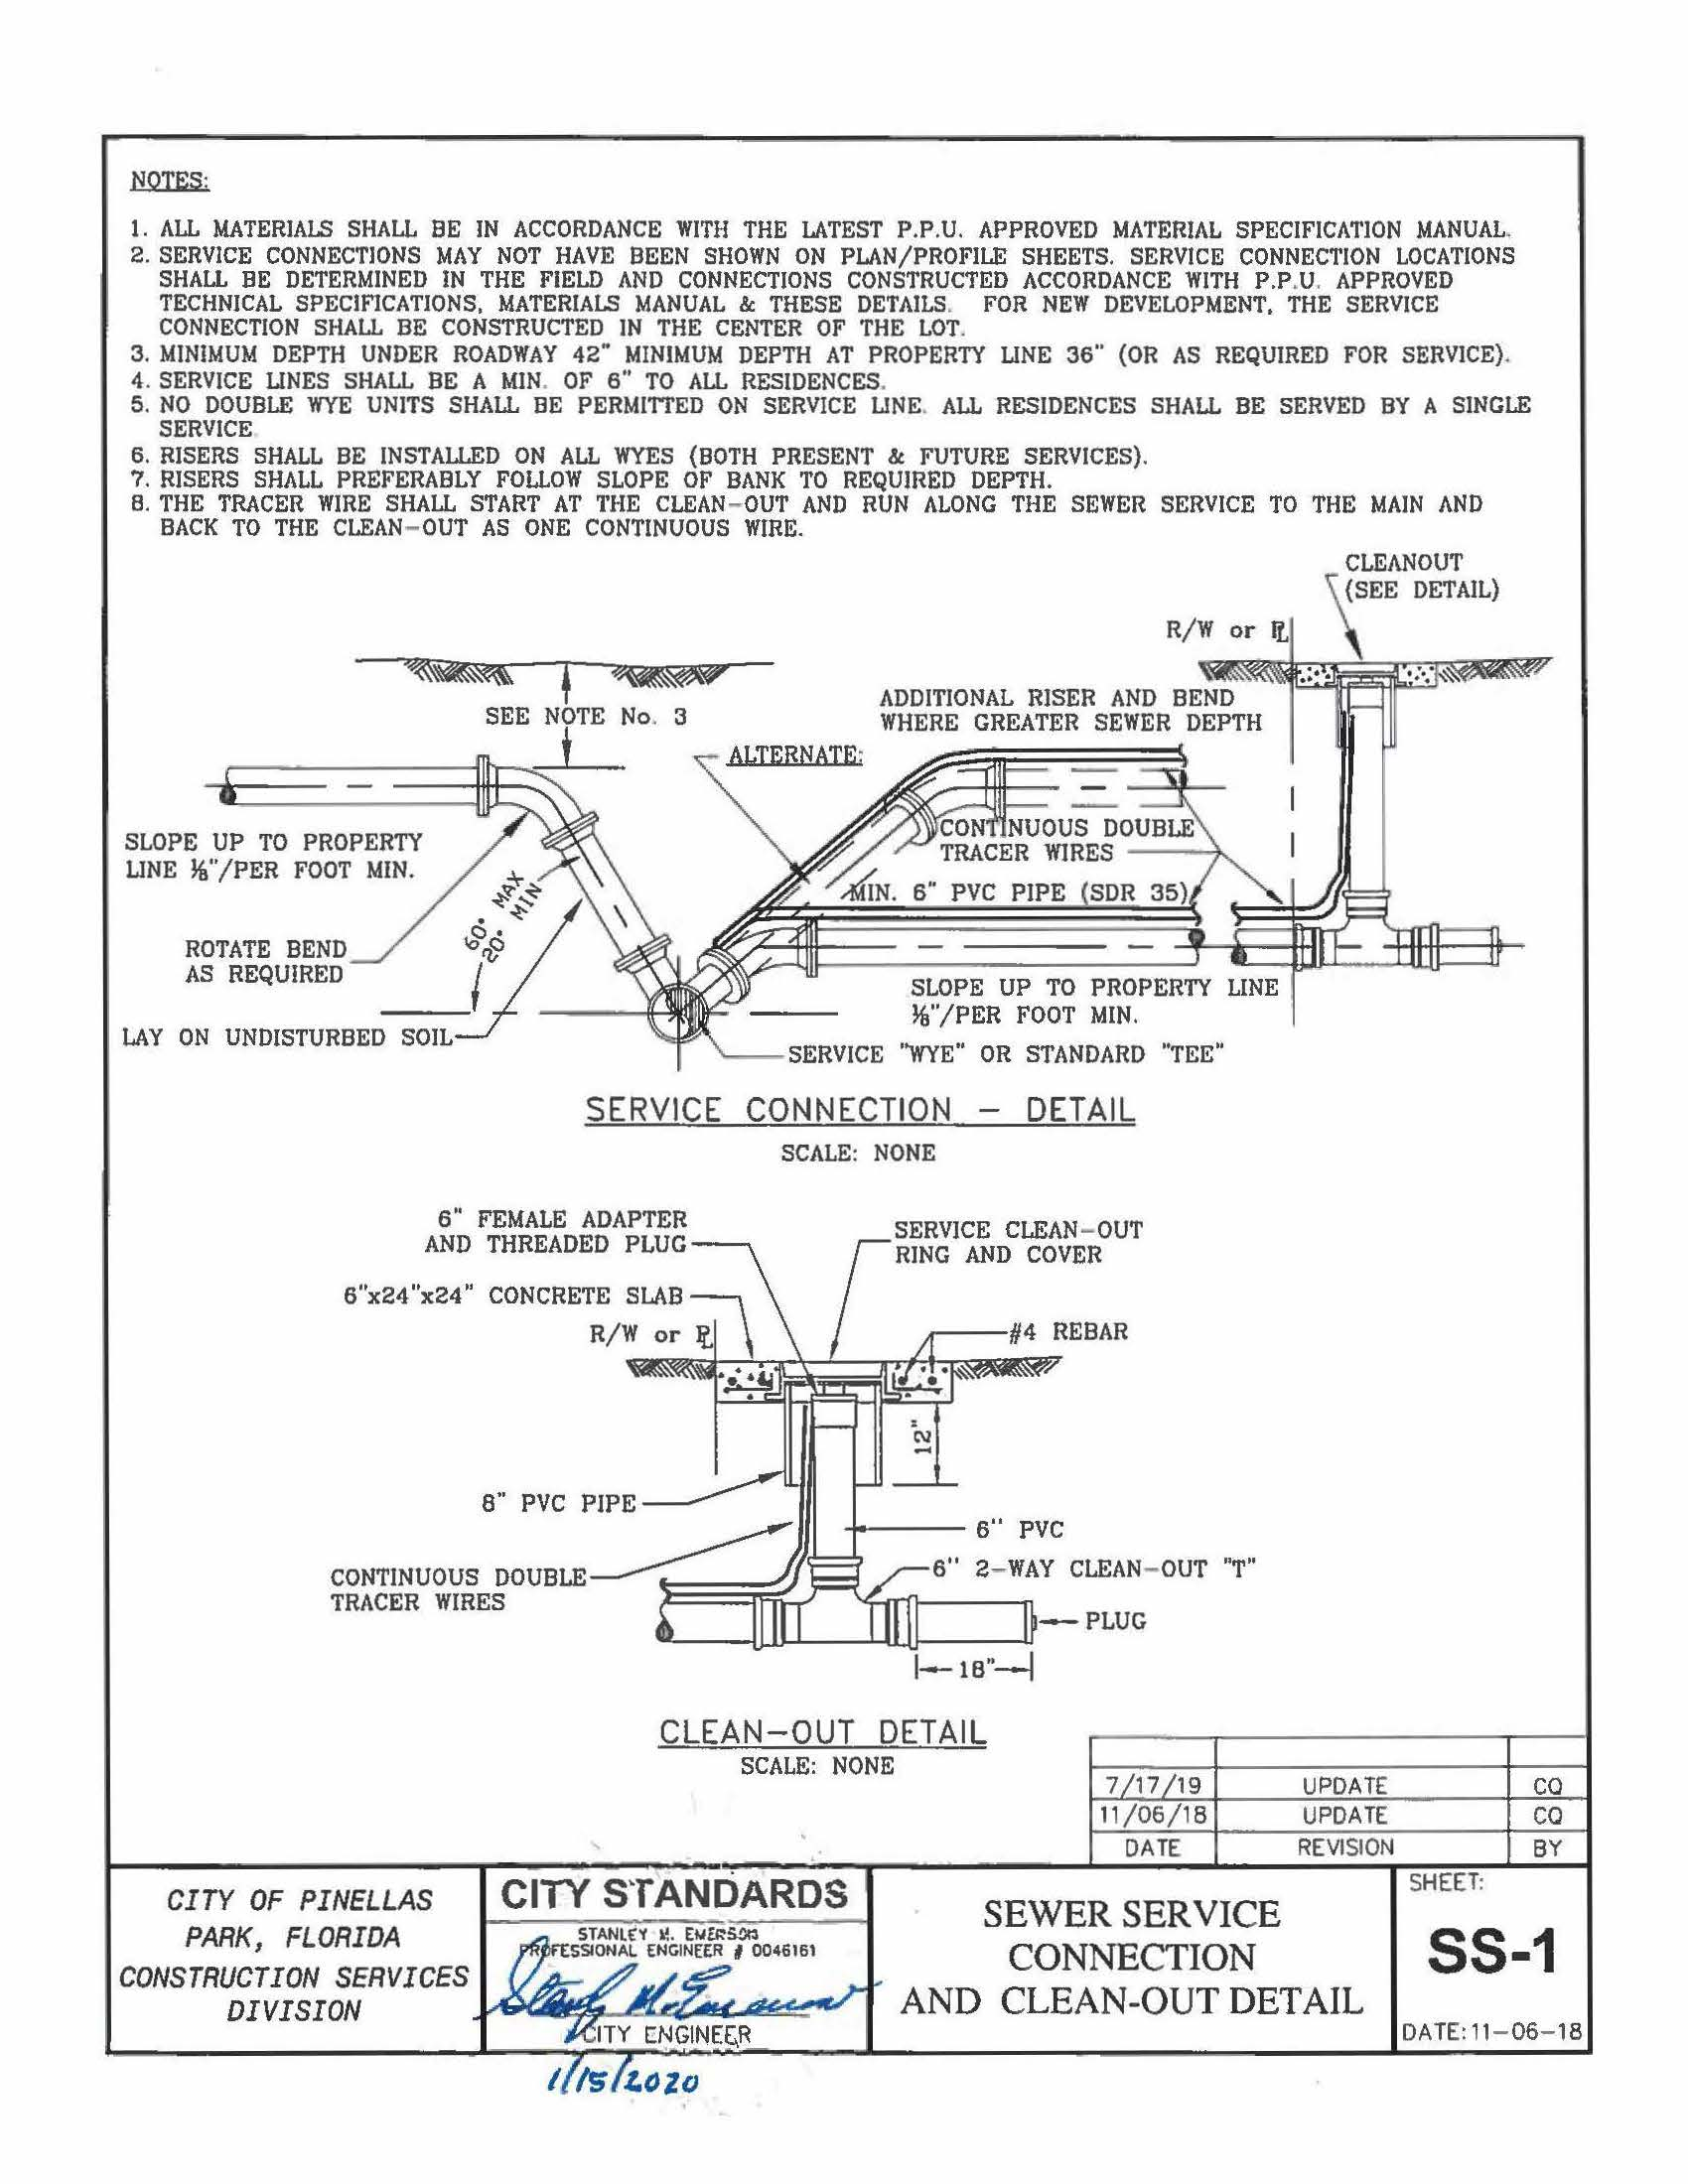 City of Pinellas Park Engineering Manual.ADA_Page_104